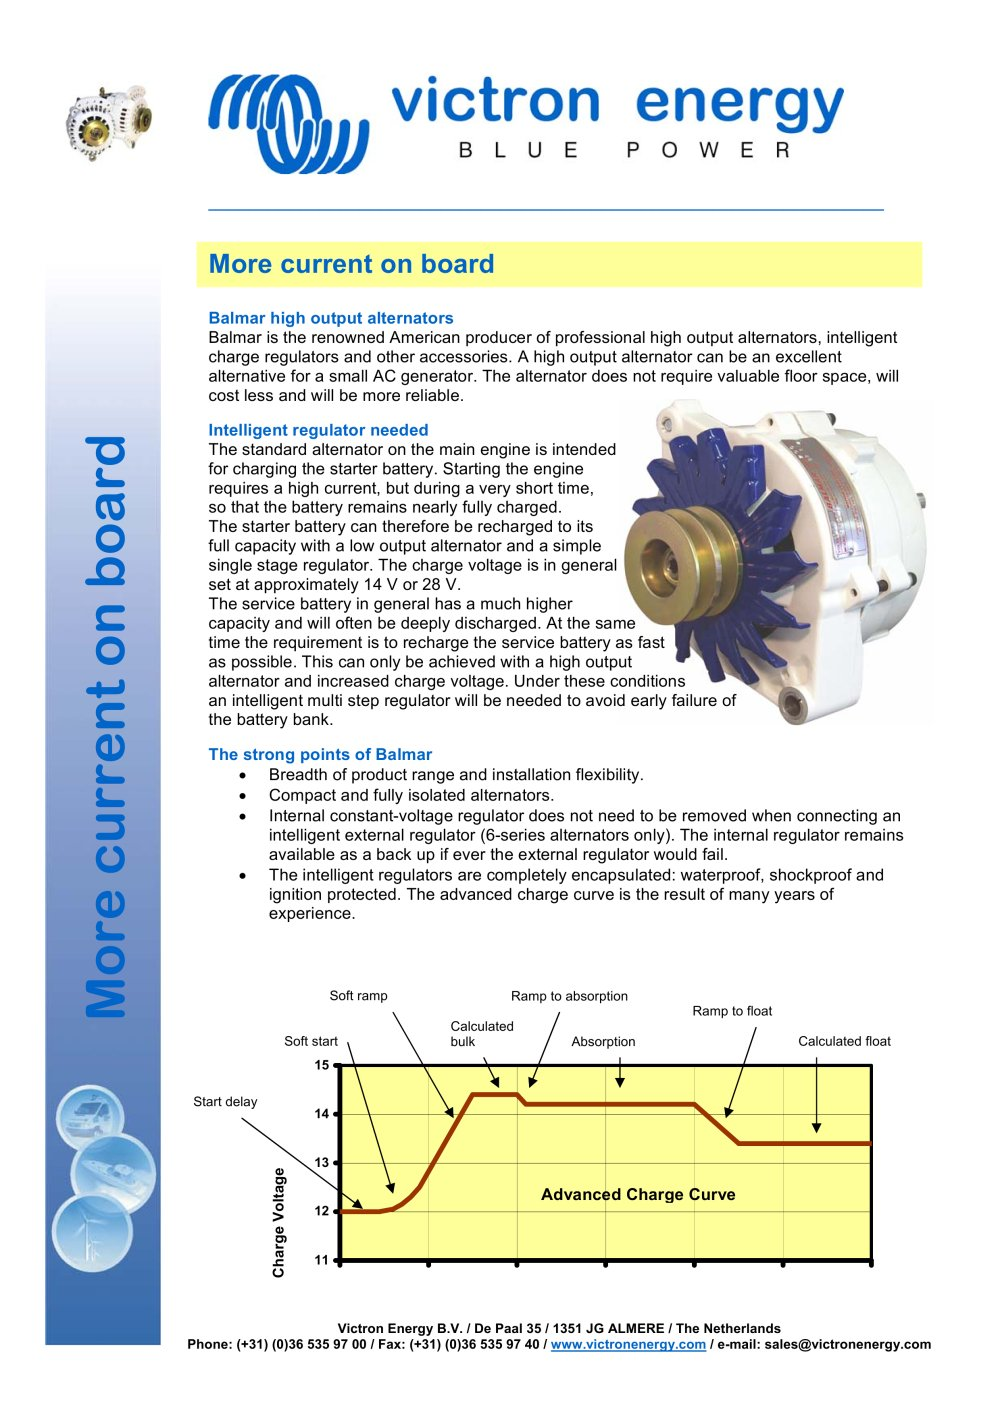 Marine Alternator Victron Energy Pdf Catalogues Documentation Charge Wirebatteryselectorswitchjpg 1 6 Pages